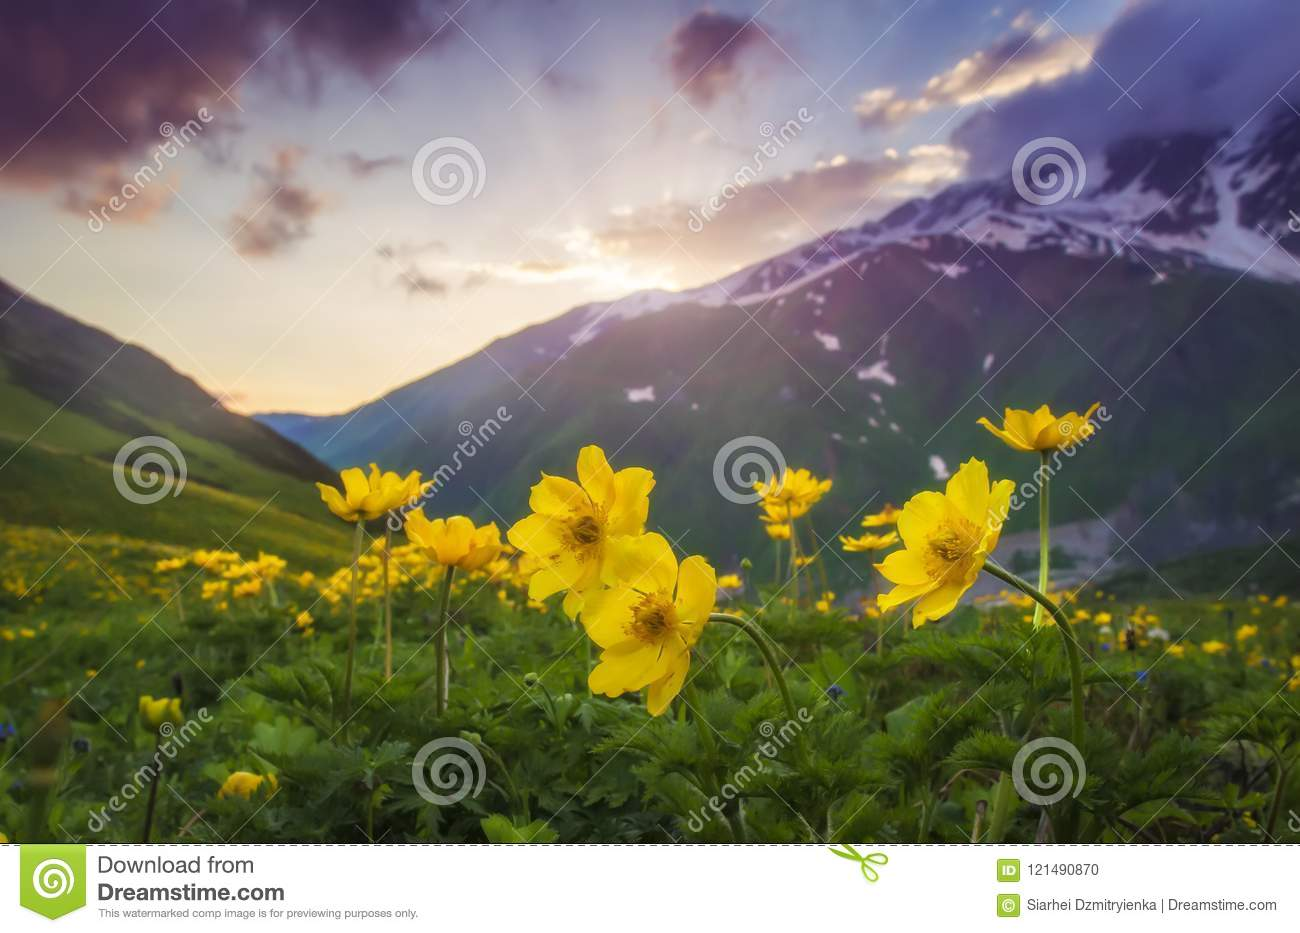 Landscape of beautiful mountains at sunset. Yellow flowers on foreground on mountain meadow on evening sky and hills background